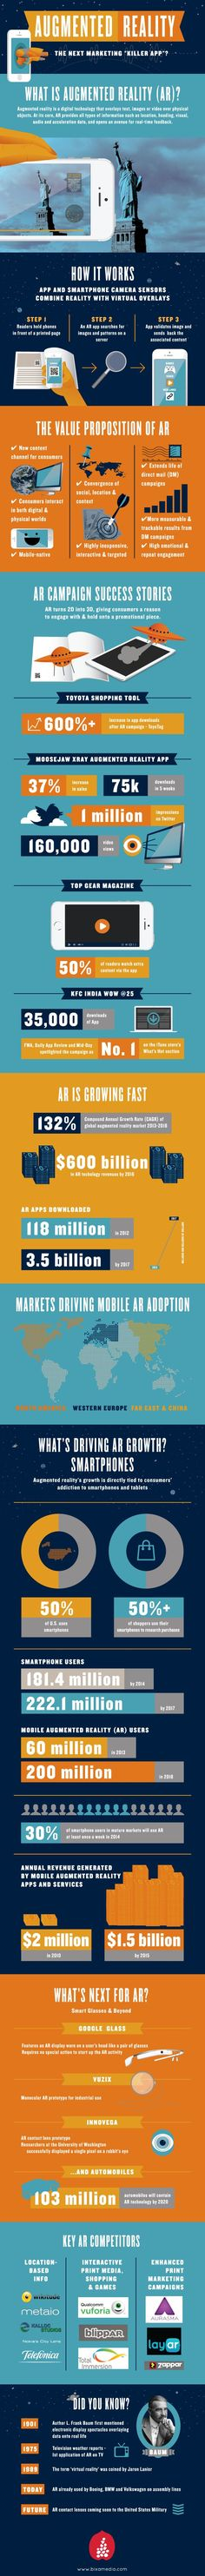 """Infographic: Augmented Reality - The Next Marketing """"Killer App""""?                                                                                                                                                                                 More"""